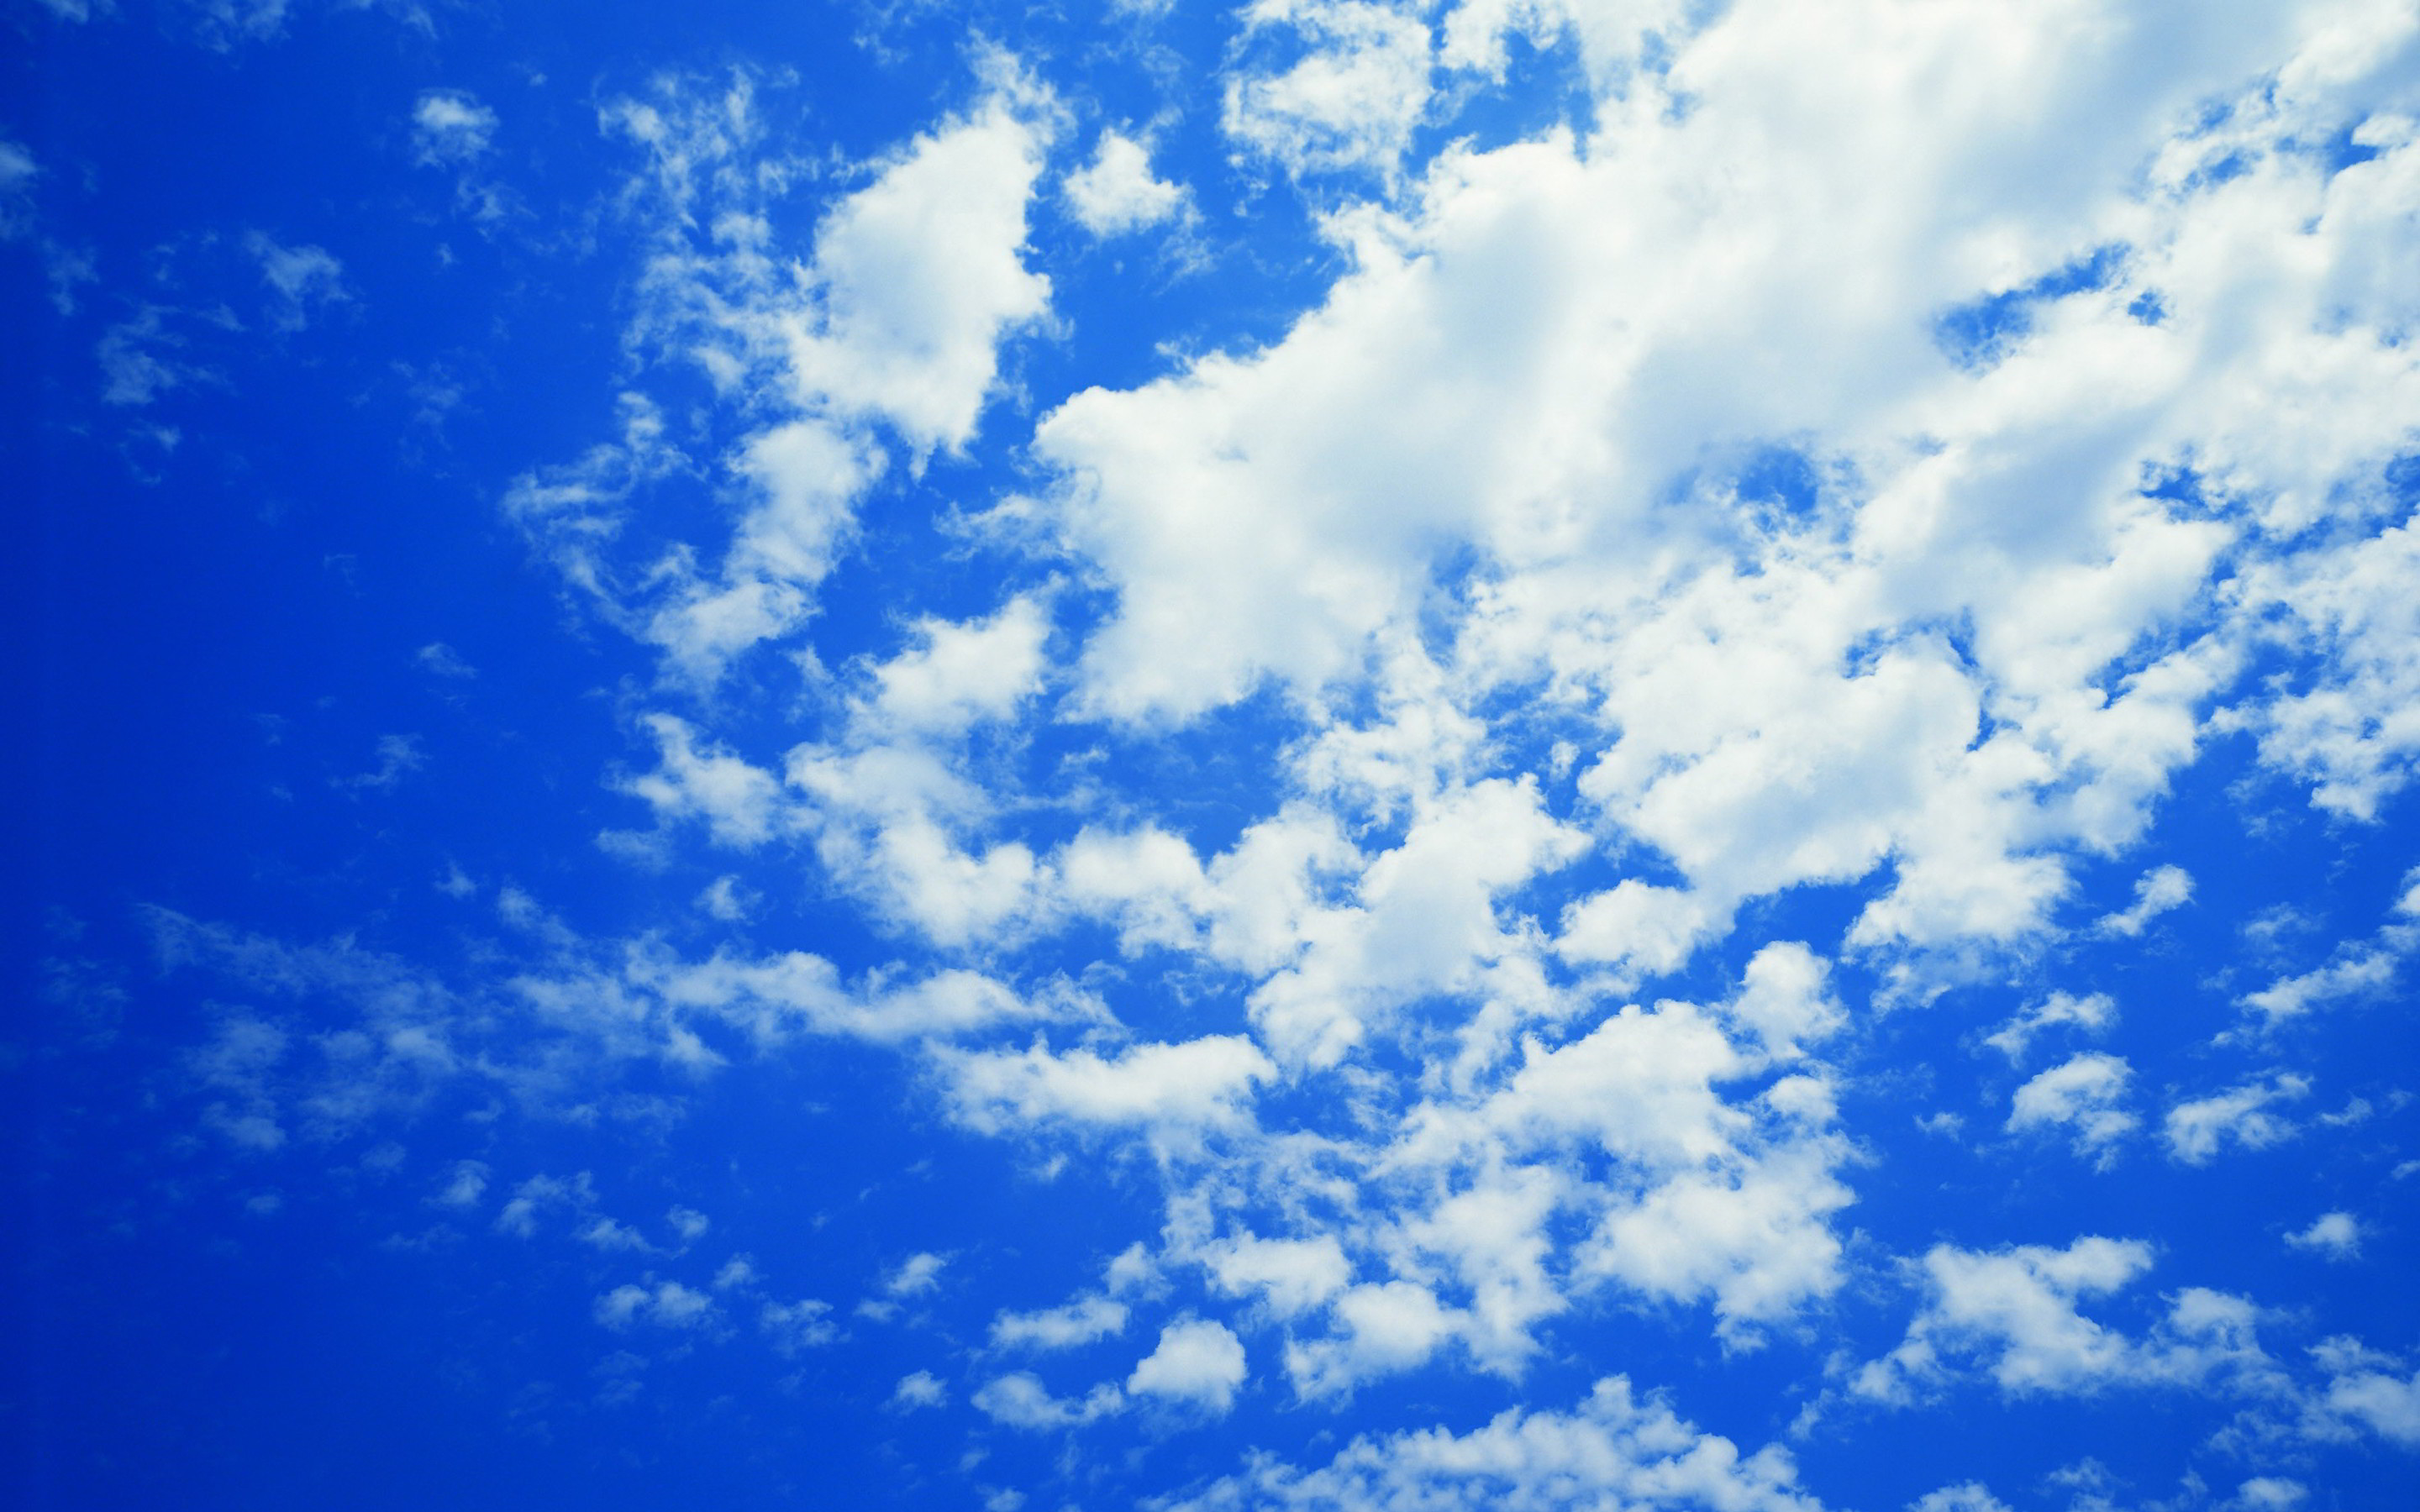 Blue Sky And Clouds Wallpaper